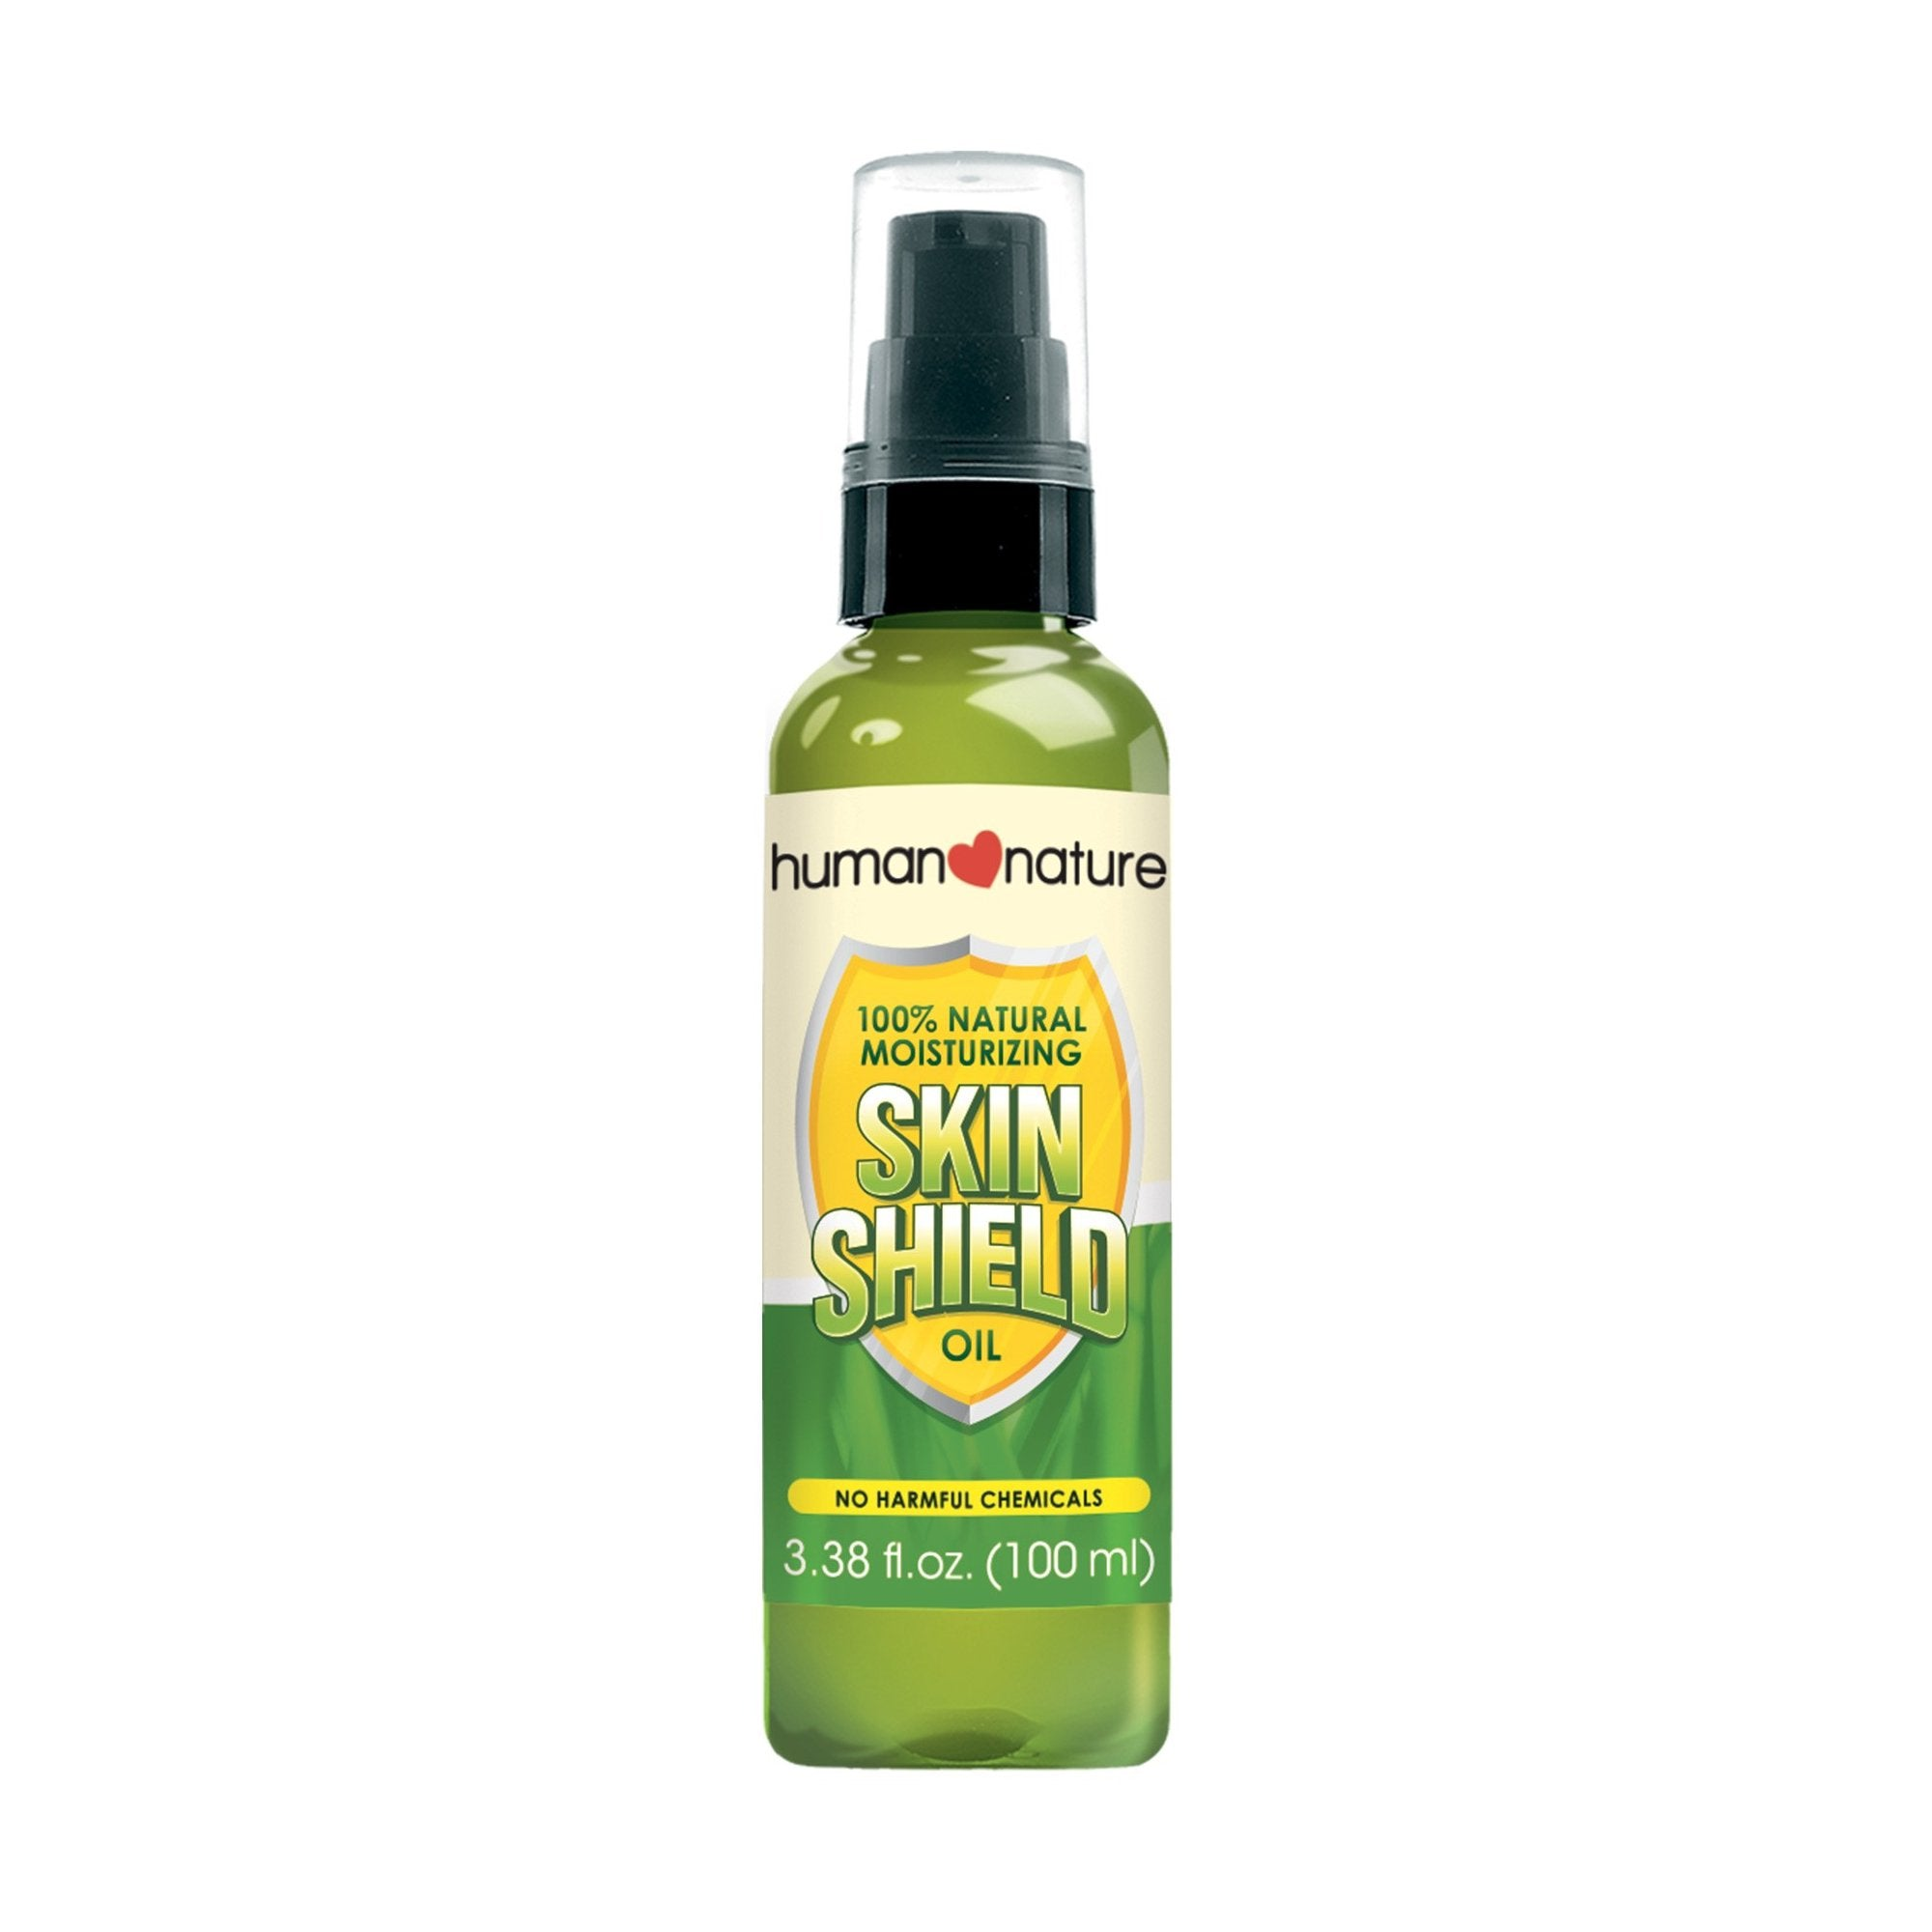 Skin Shield Oil